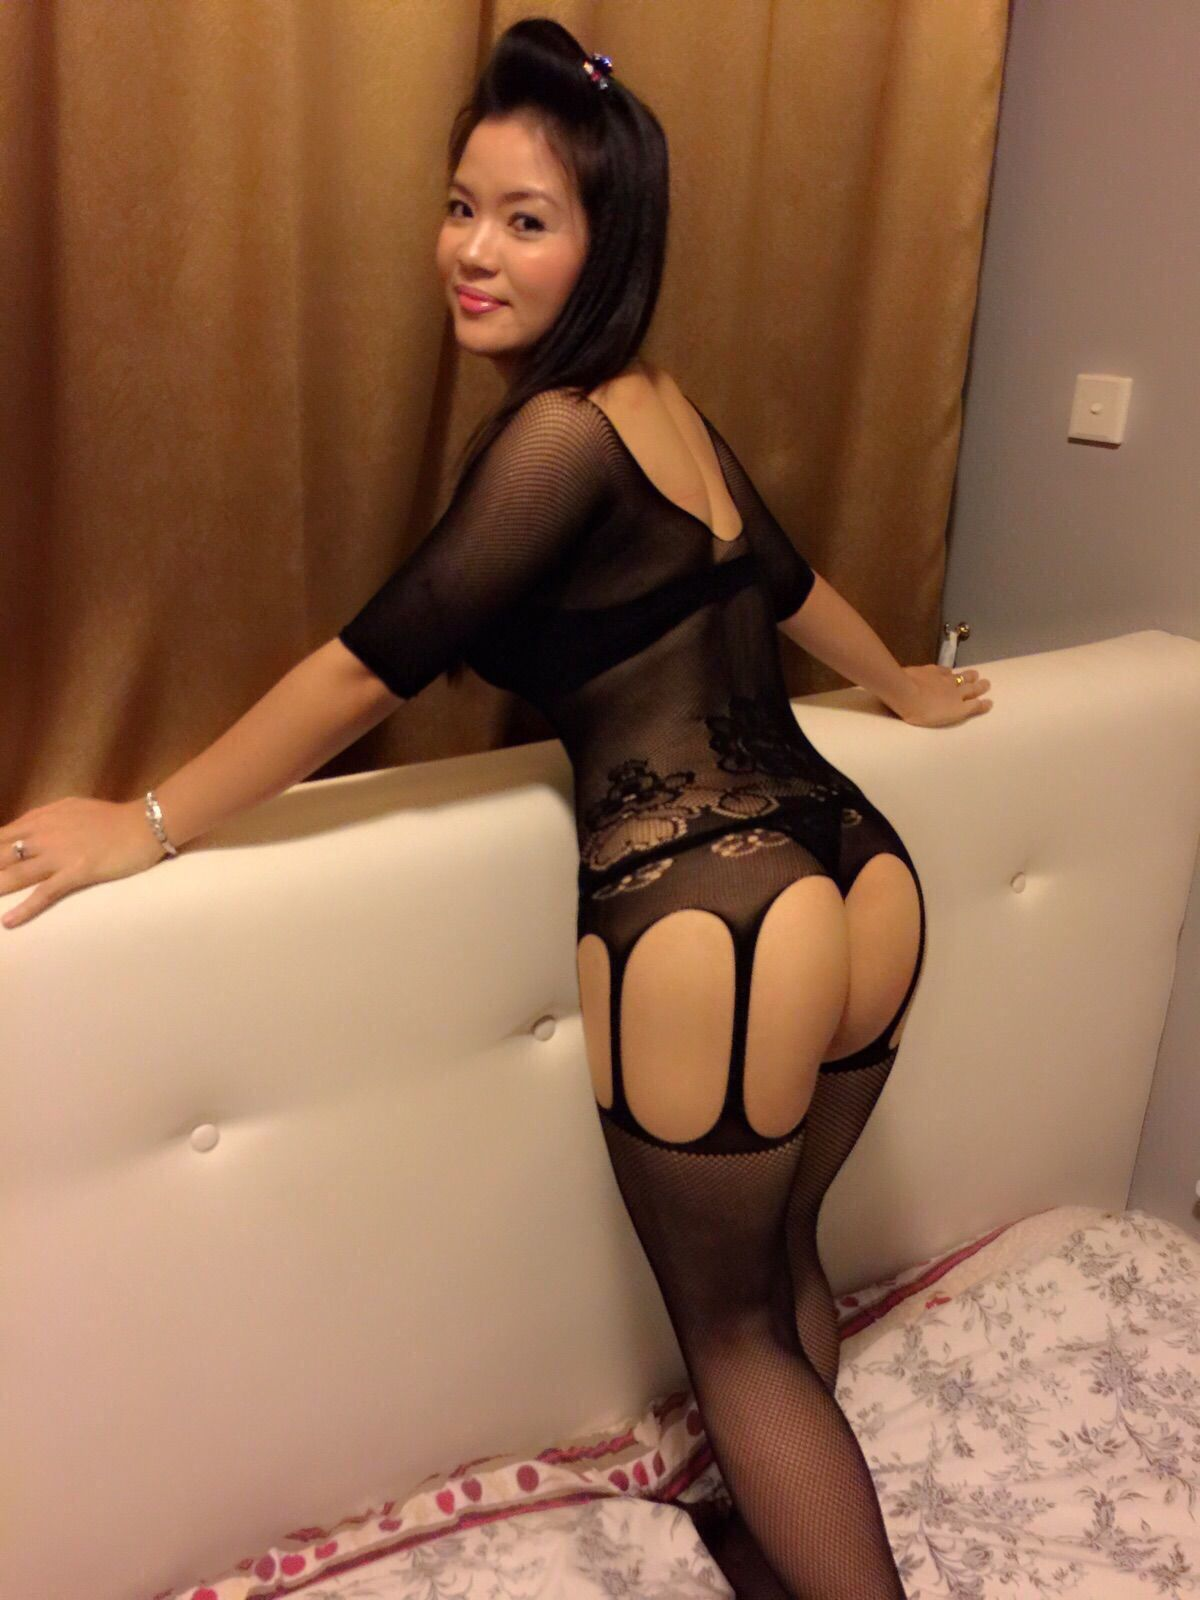 escort girl review thai escort video